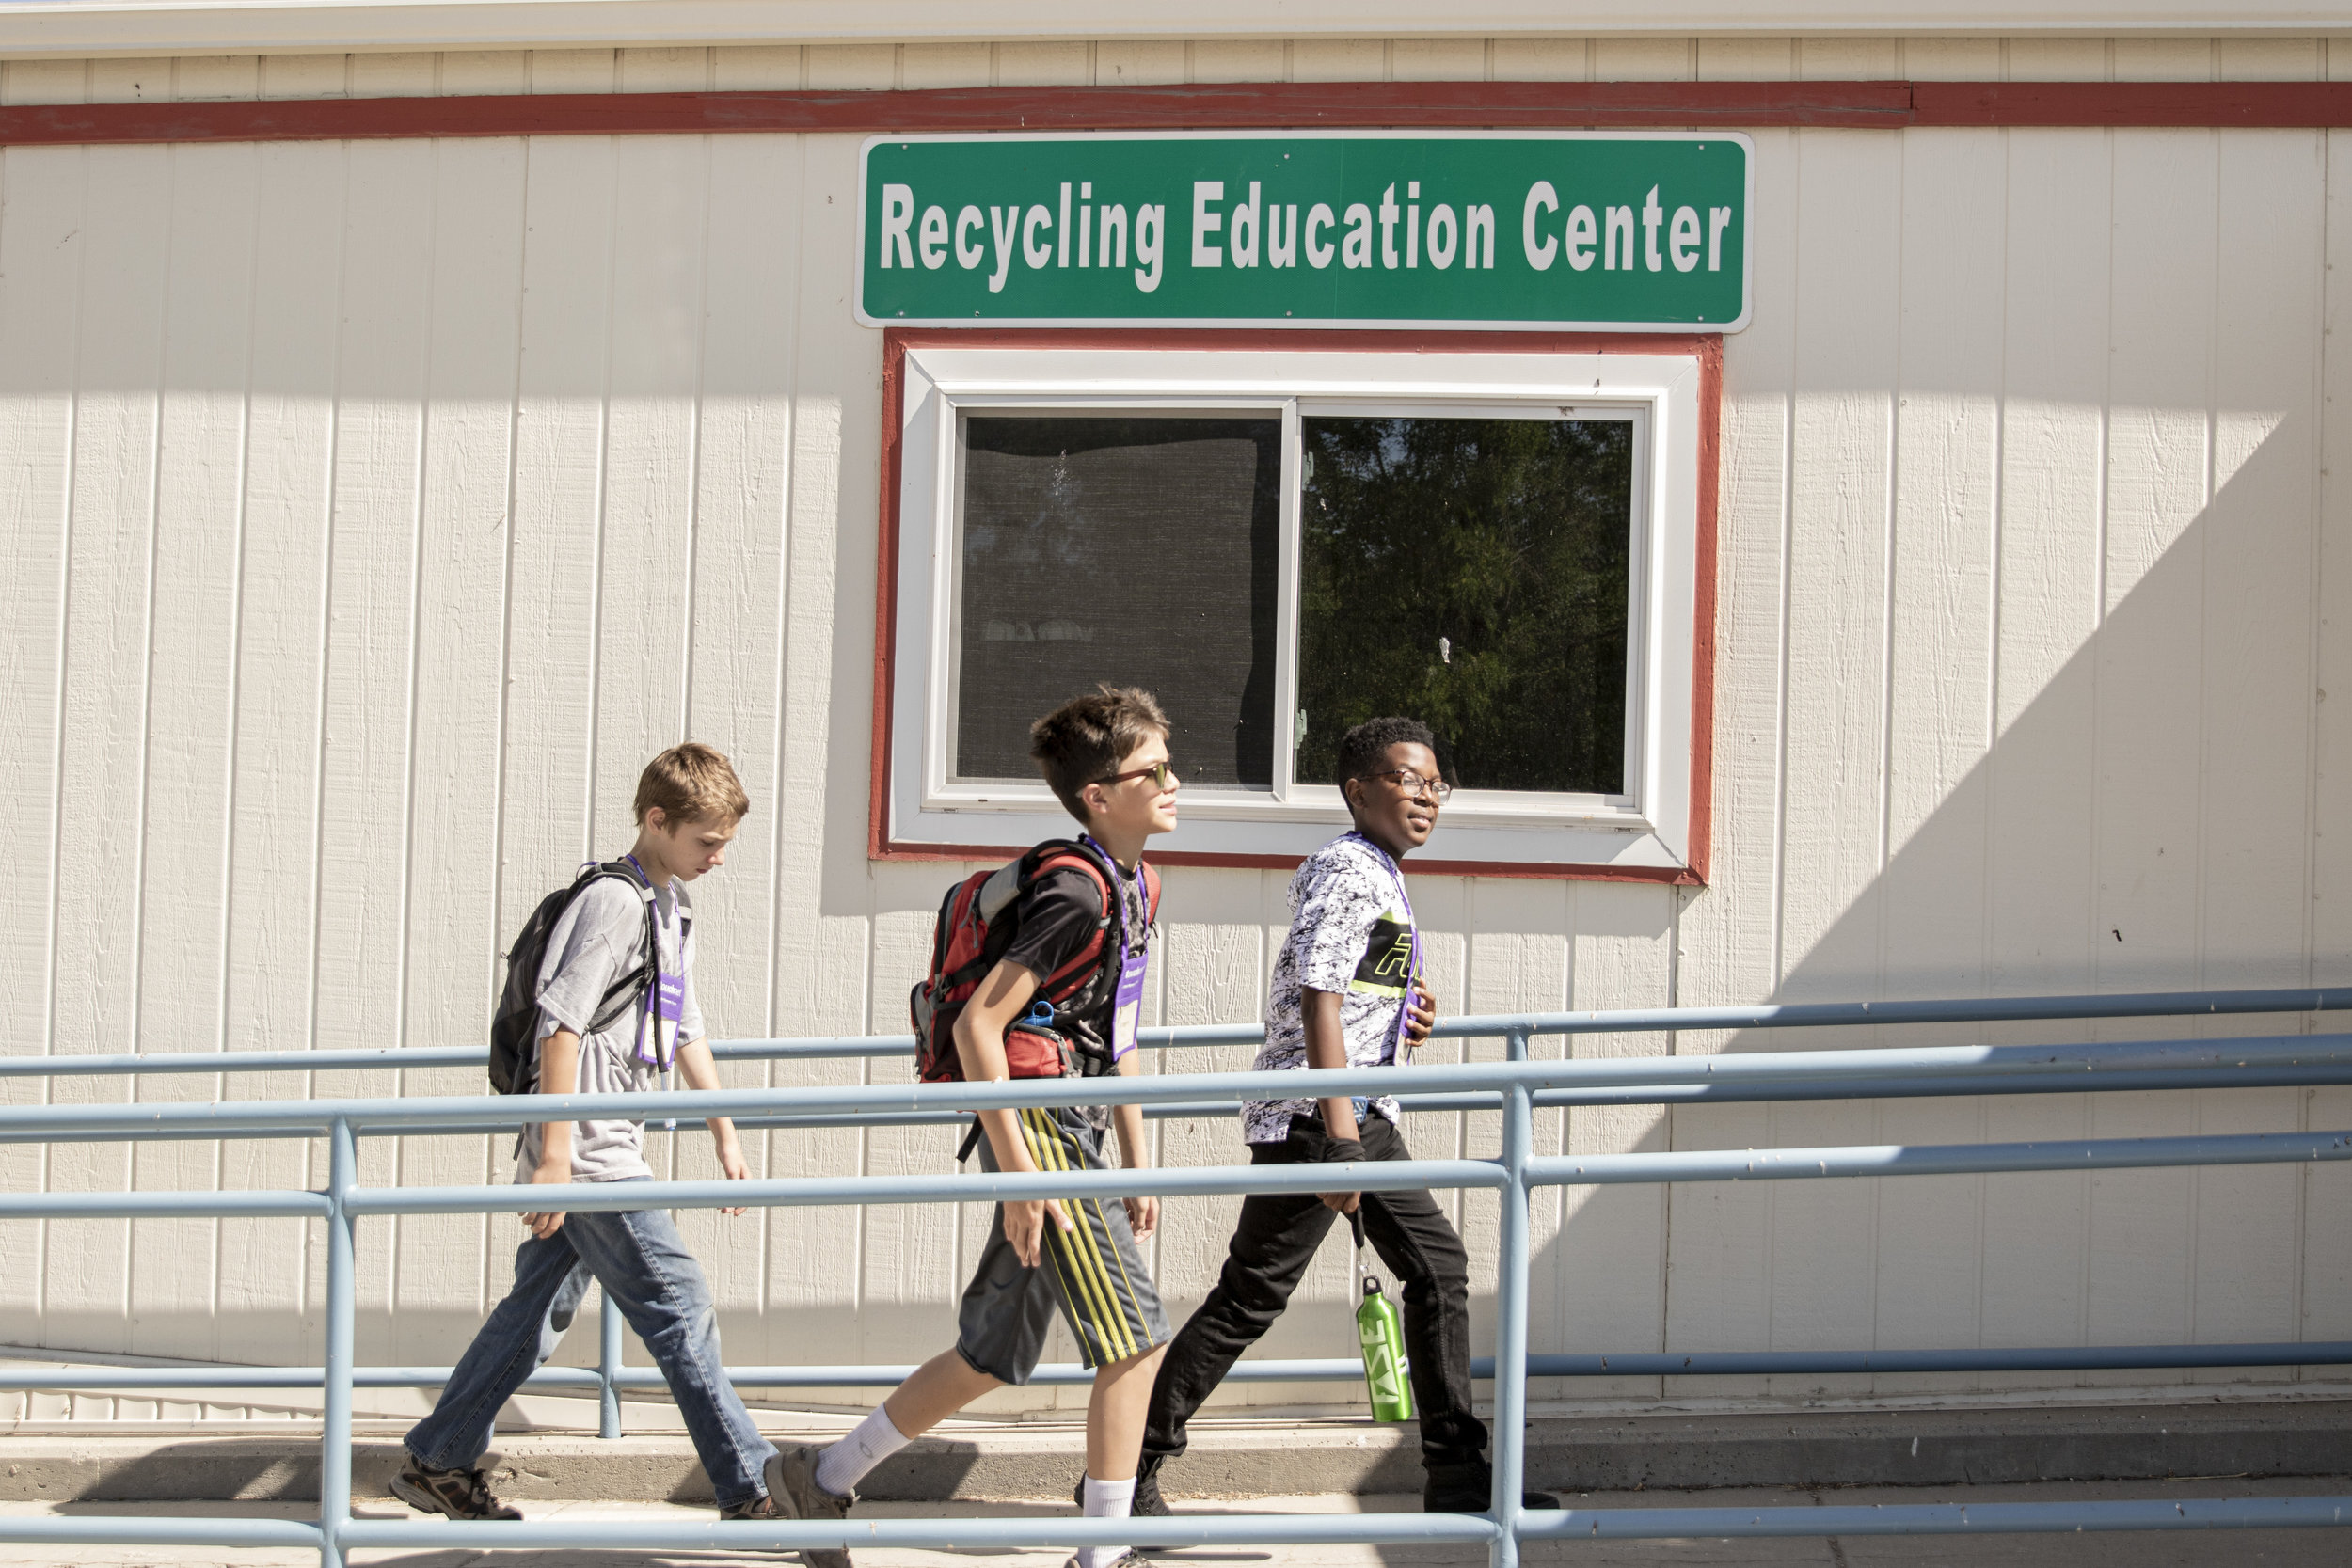 Students walking into the Recycling Education Center at the Salt Lake County Landfill.